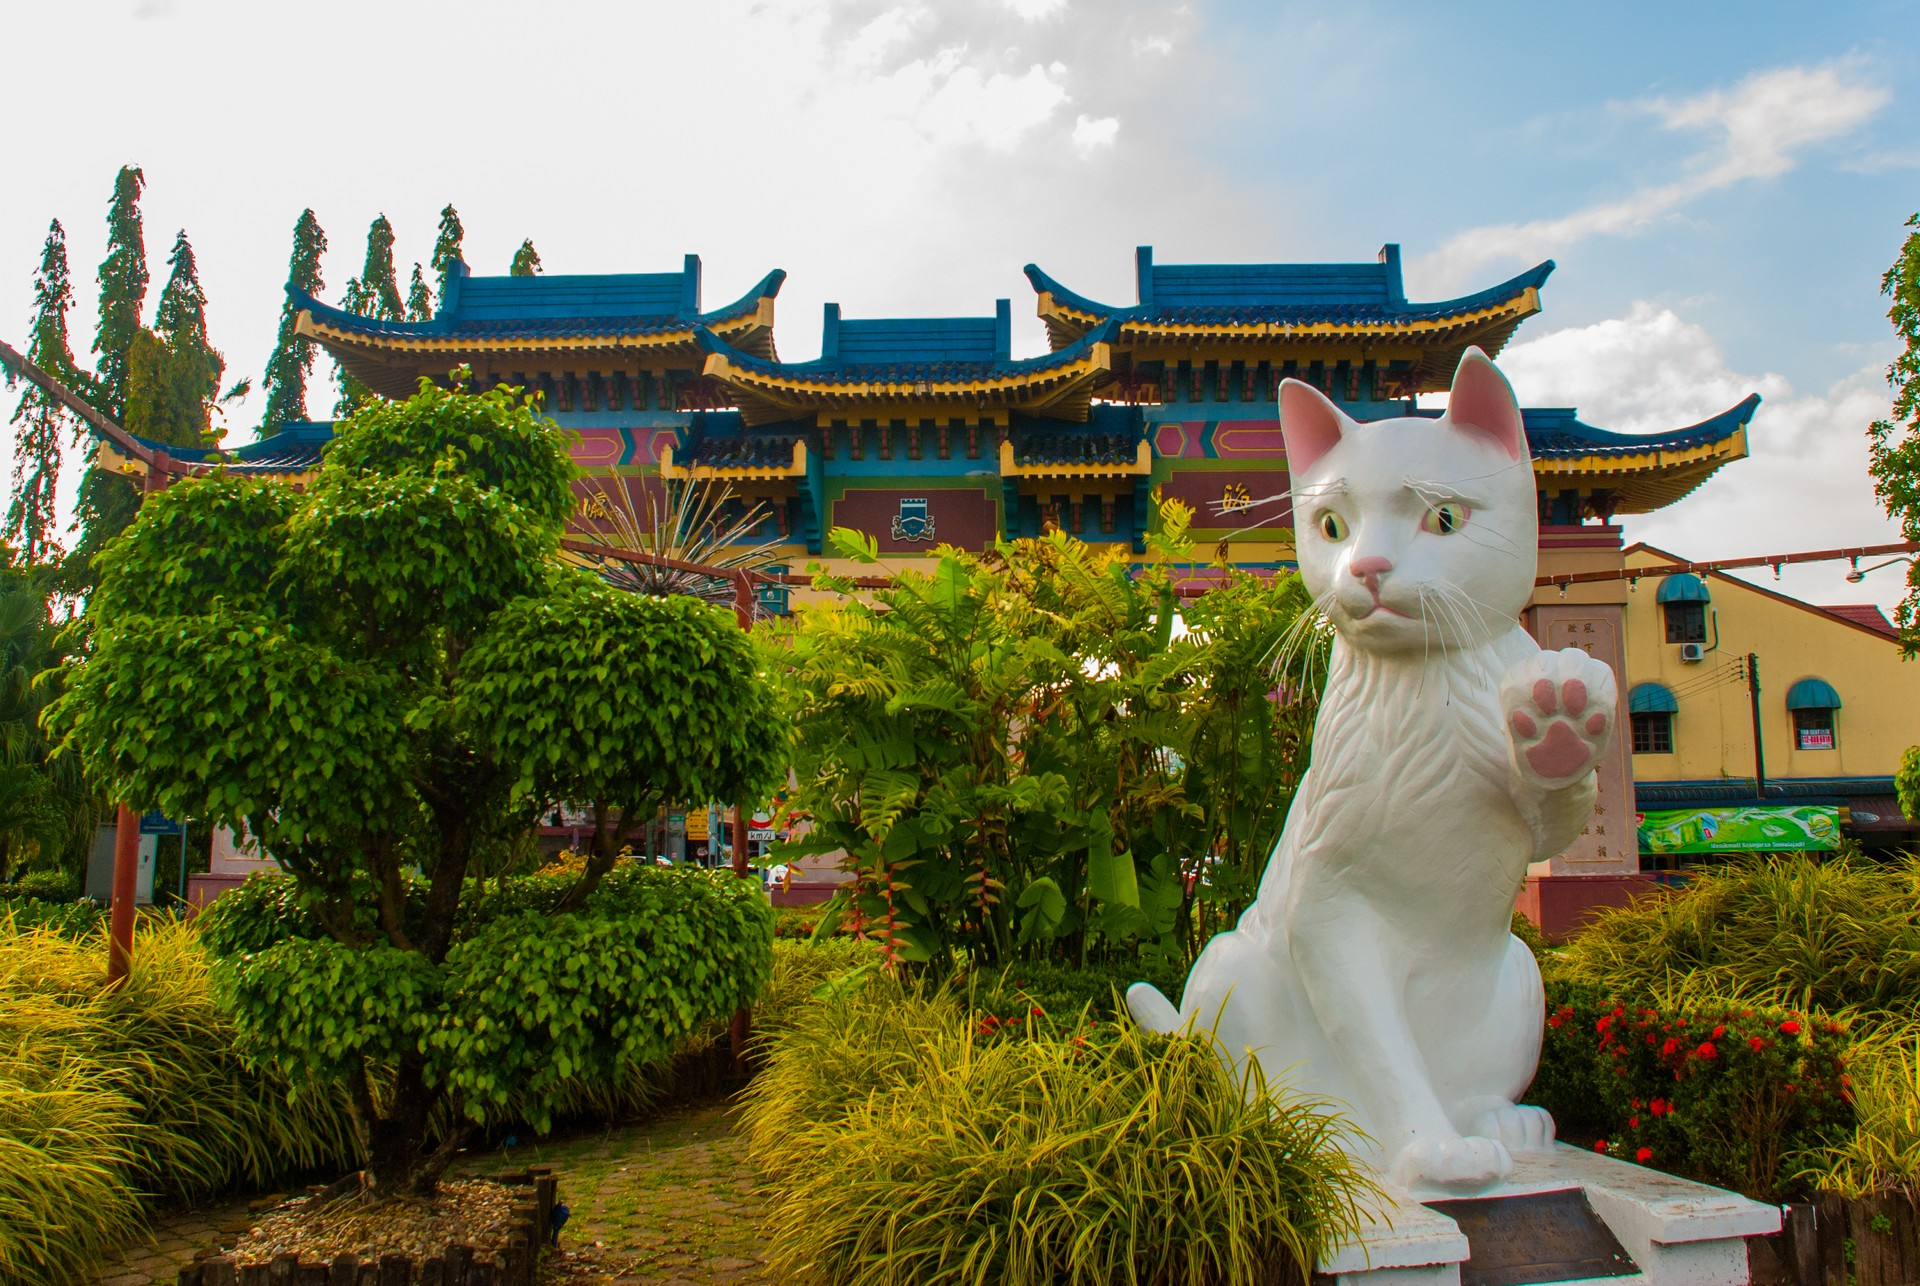 Borneo holidays: Cat statue Kuching